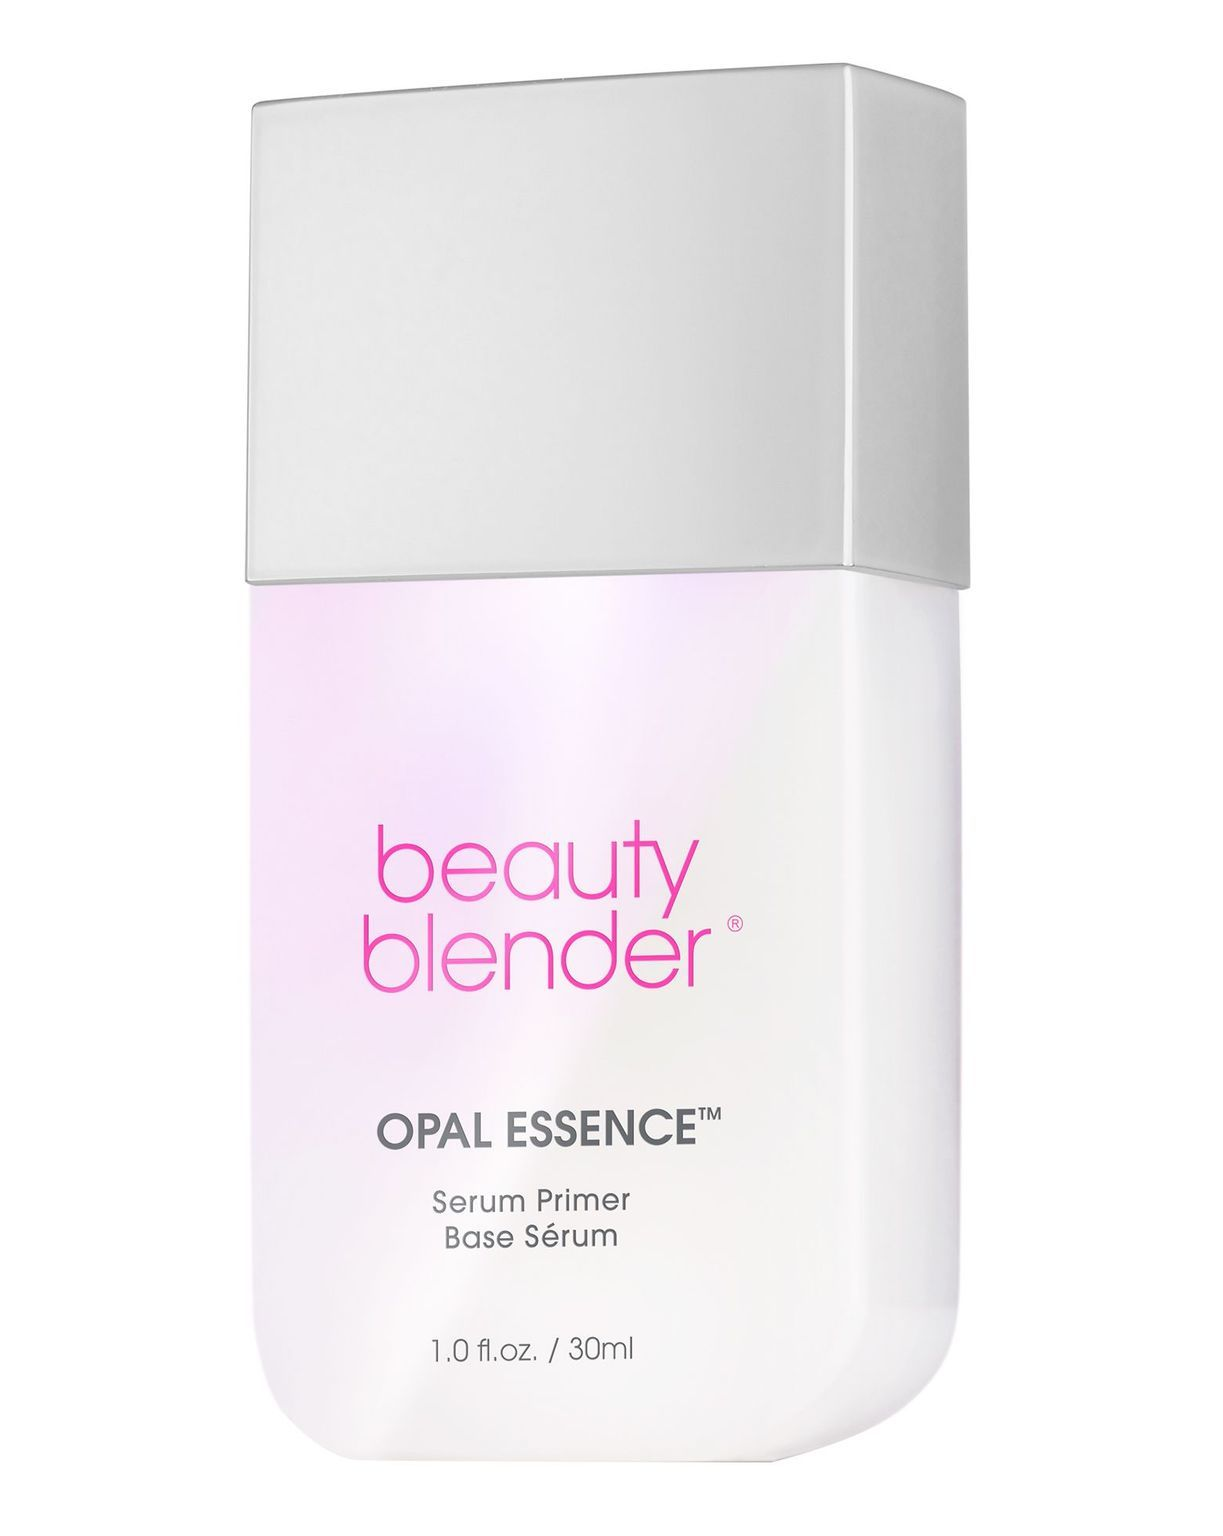 Opal Essence Serum Face Primer